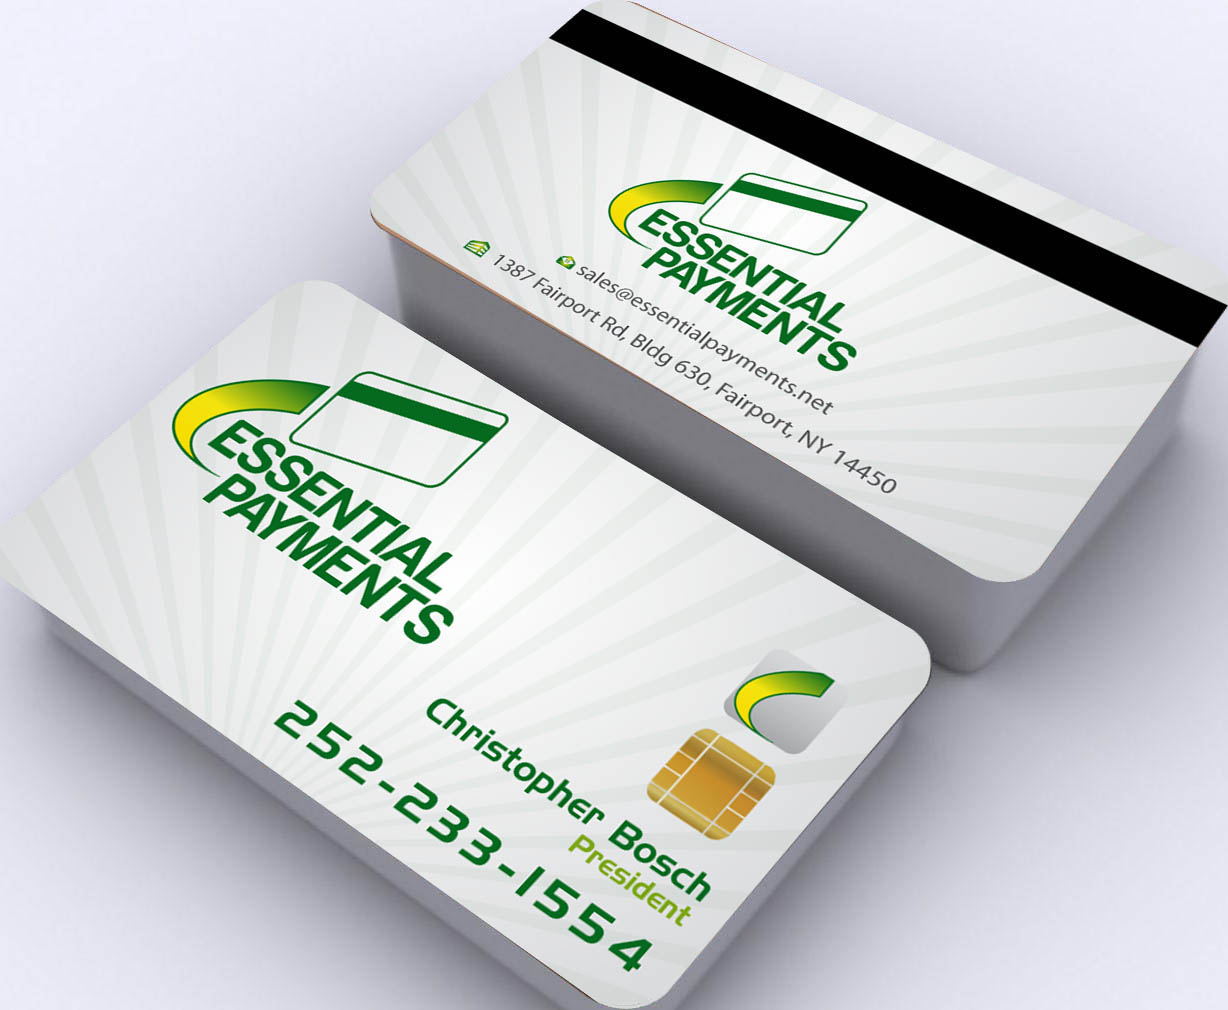 Professional masculine credit card business card design for a business card design by sbss for this project design 2421619 reheart Choice Image